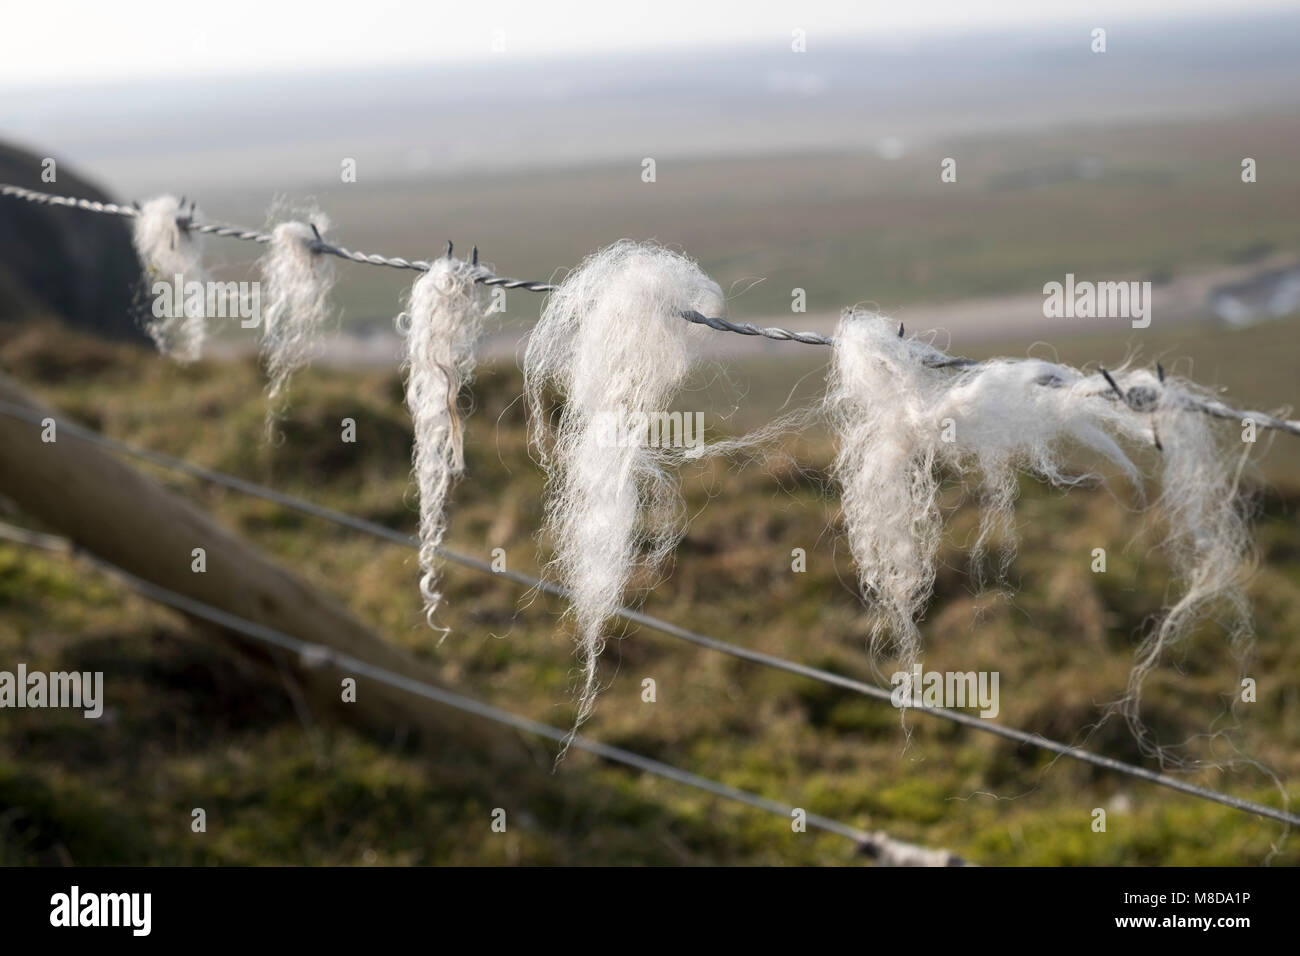 Sheep's wool on barbed wire fence, Humphrey Head, Cumbria, England - Stock Image